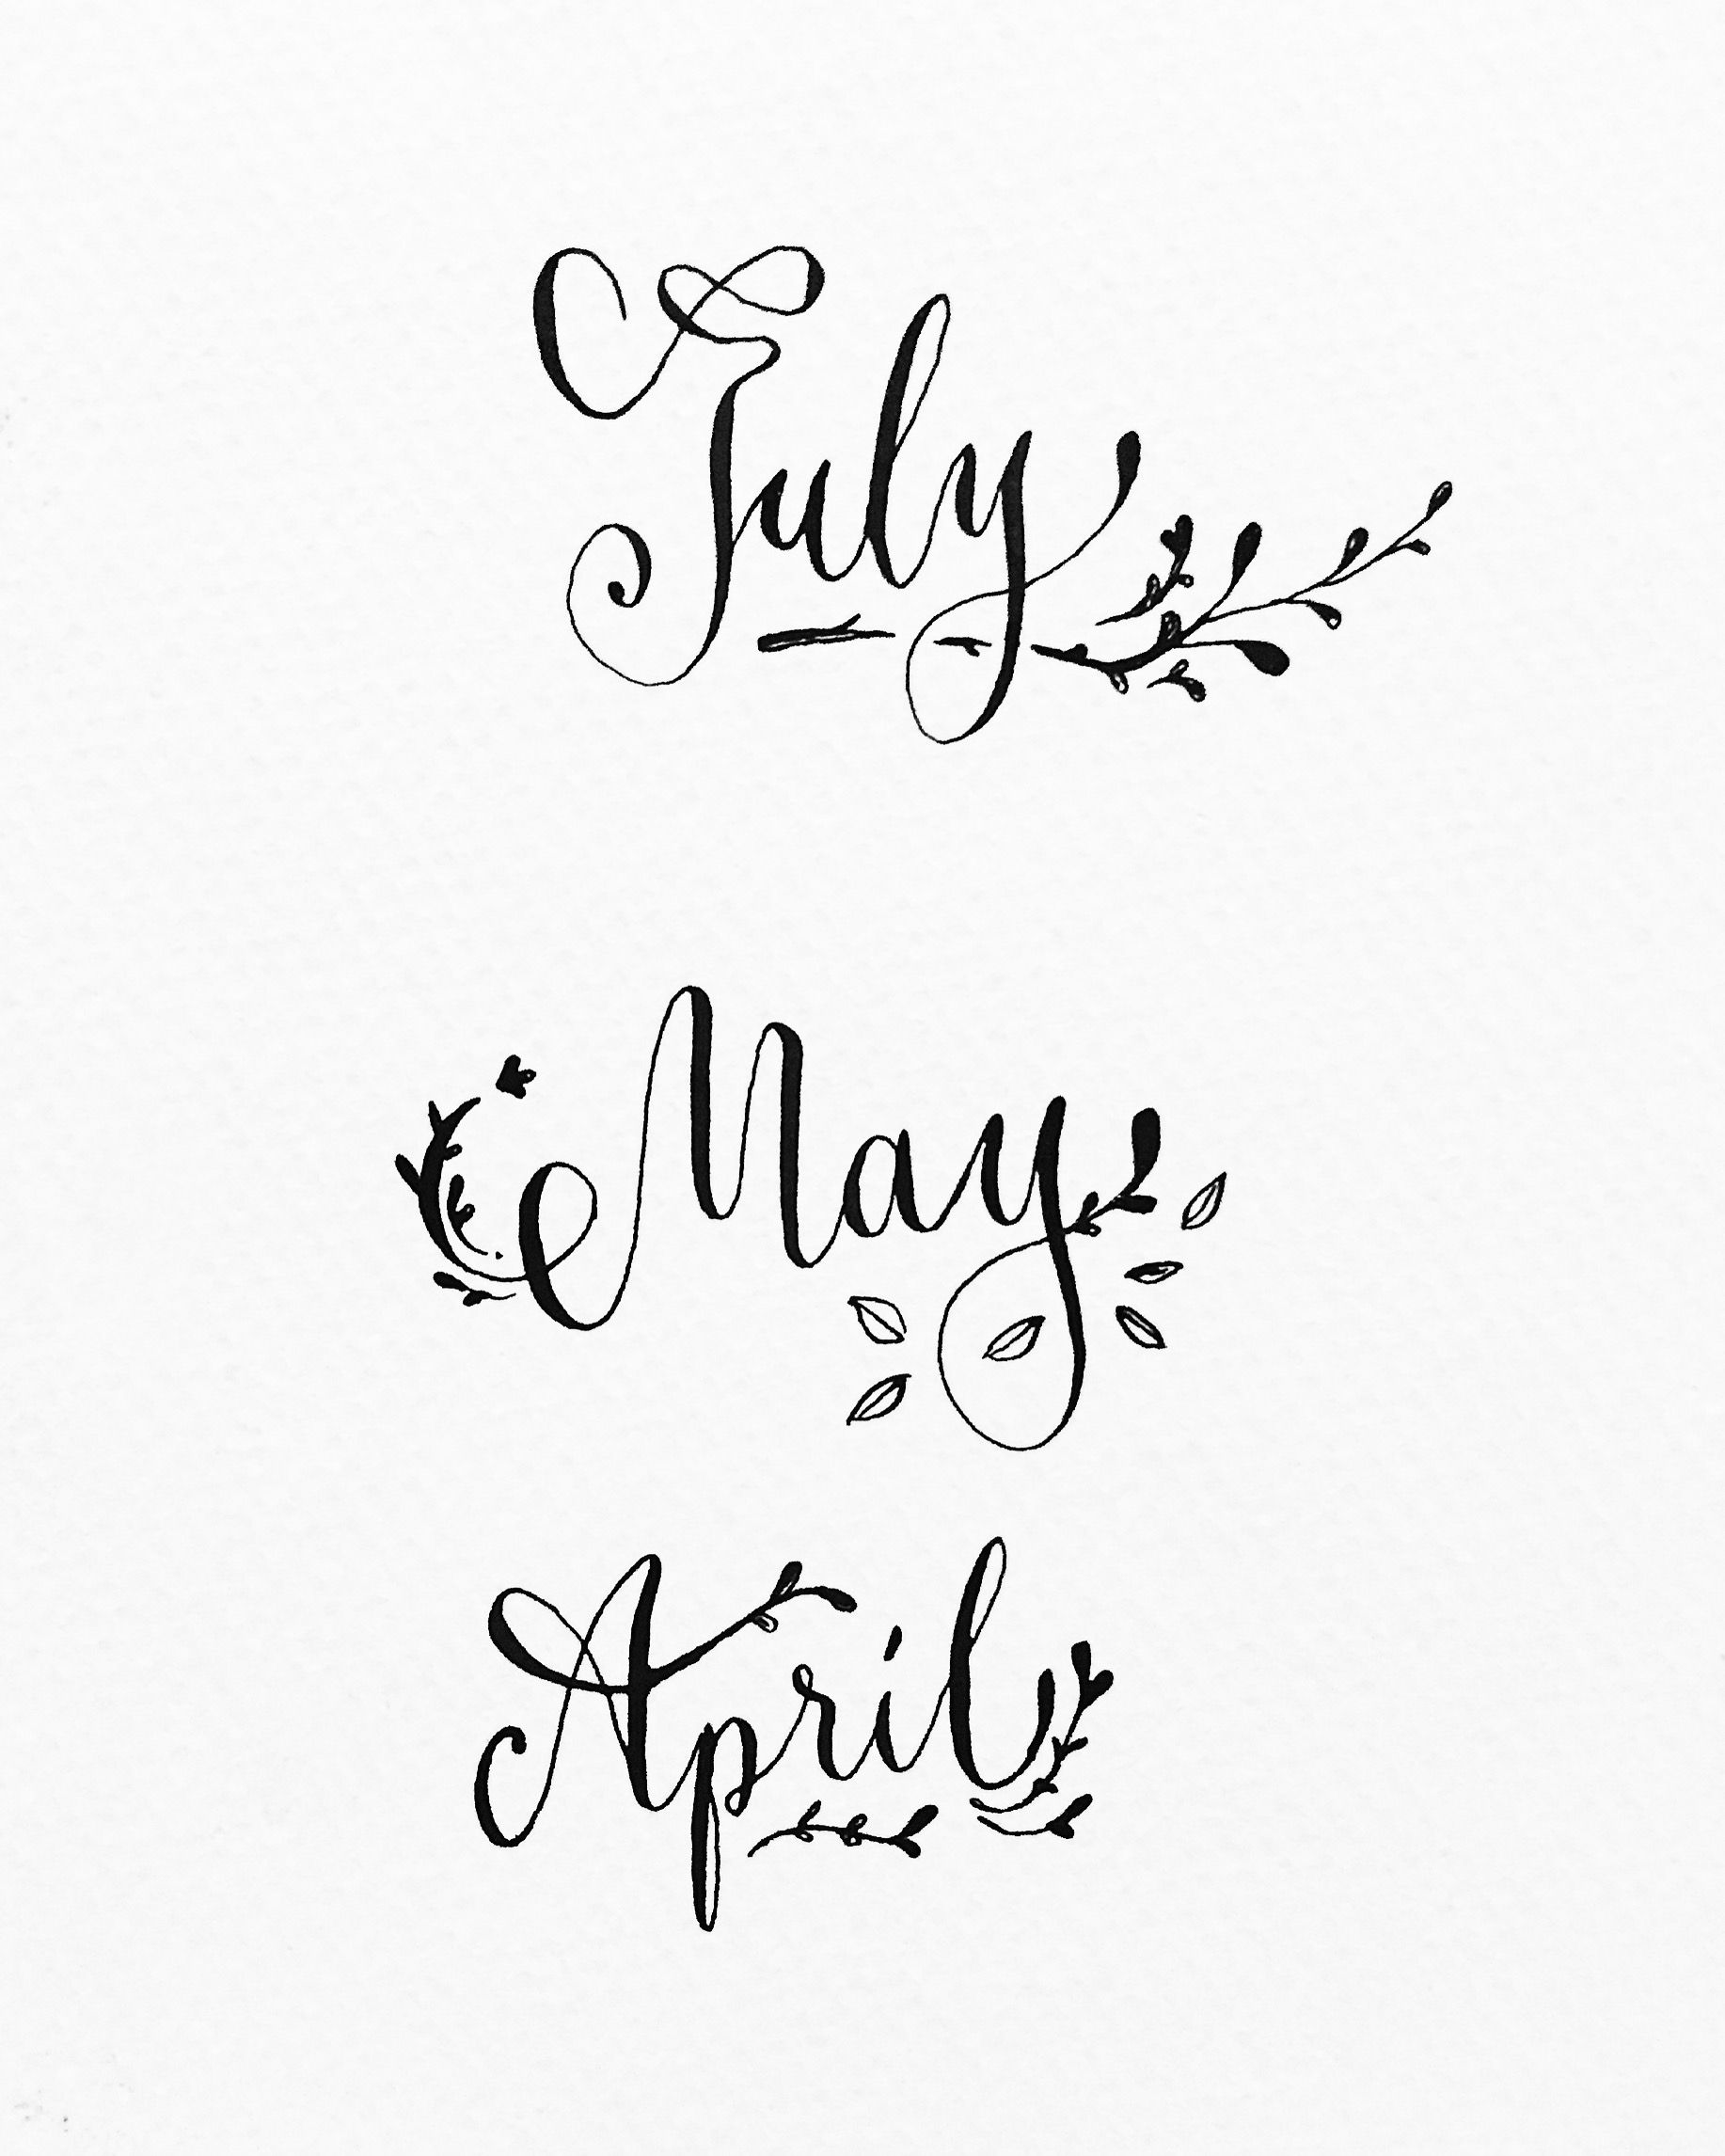 #month #july #may #april #calligraphy #typography # ...